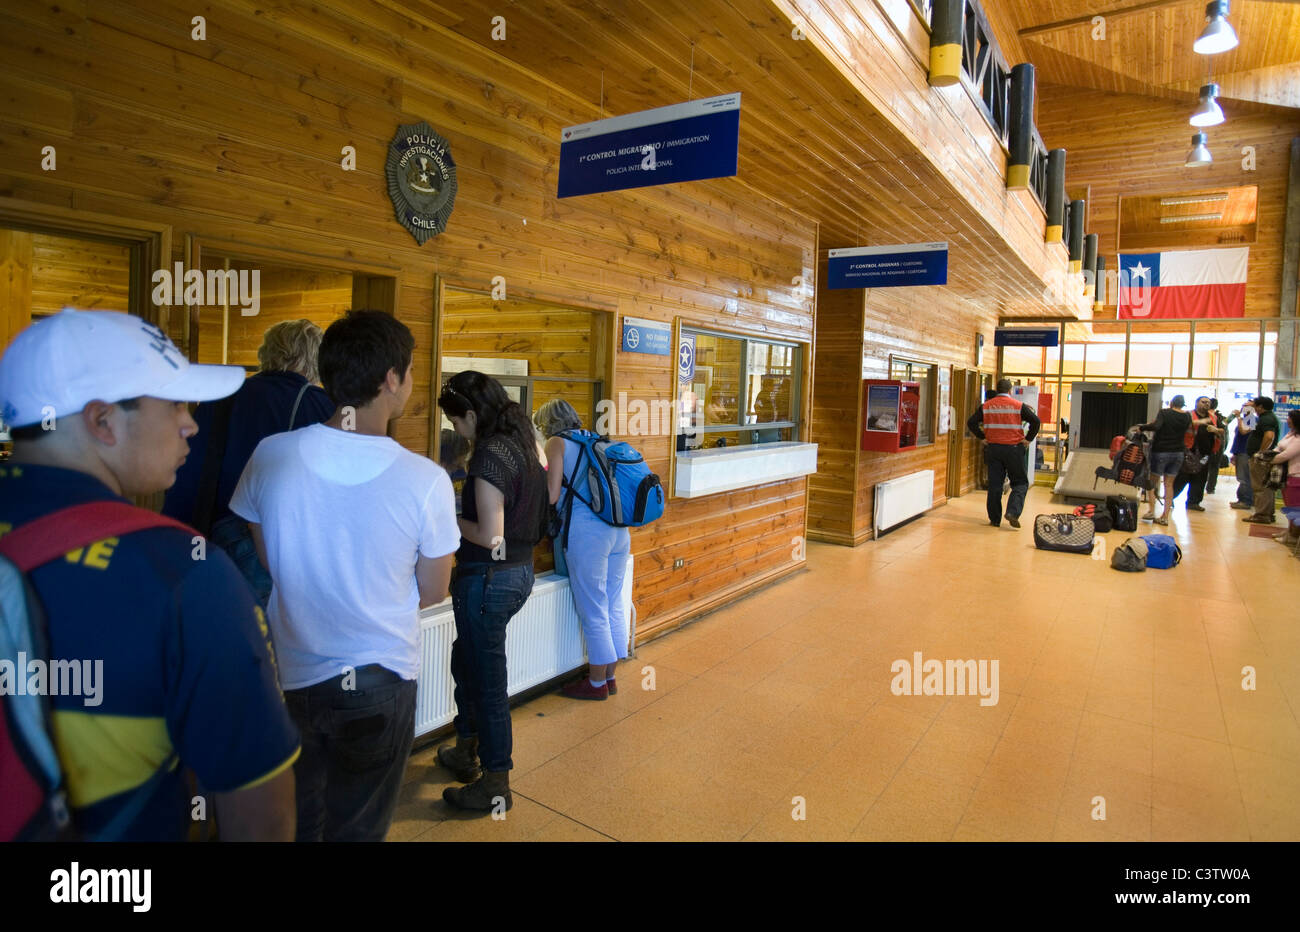 Immigration control Chilean border - Stock Image